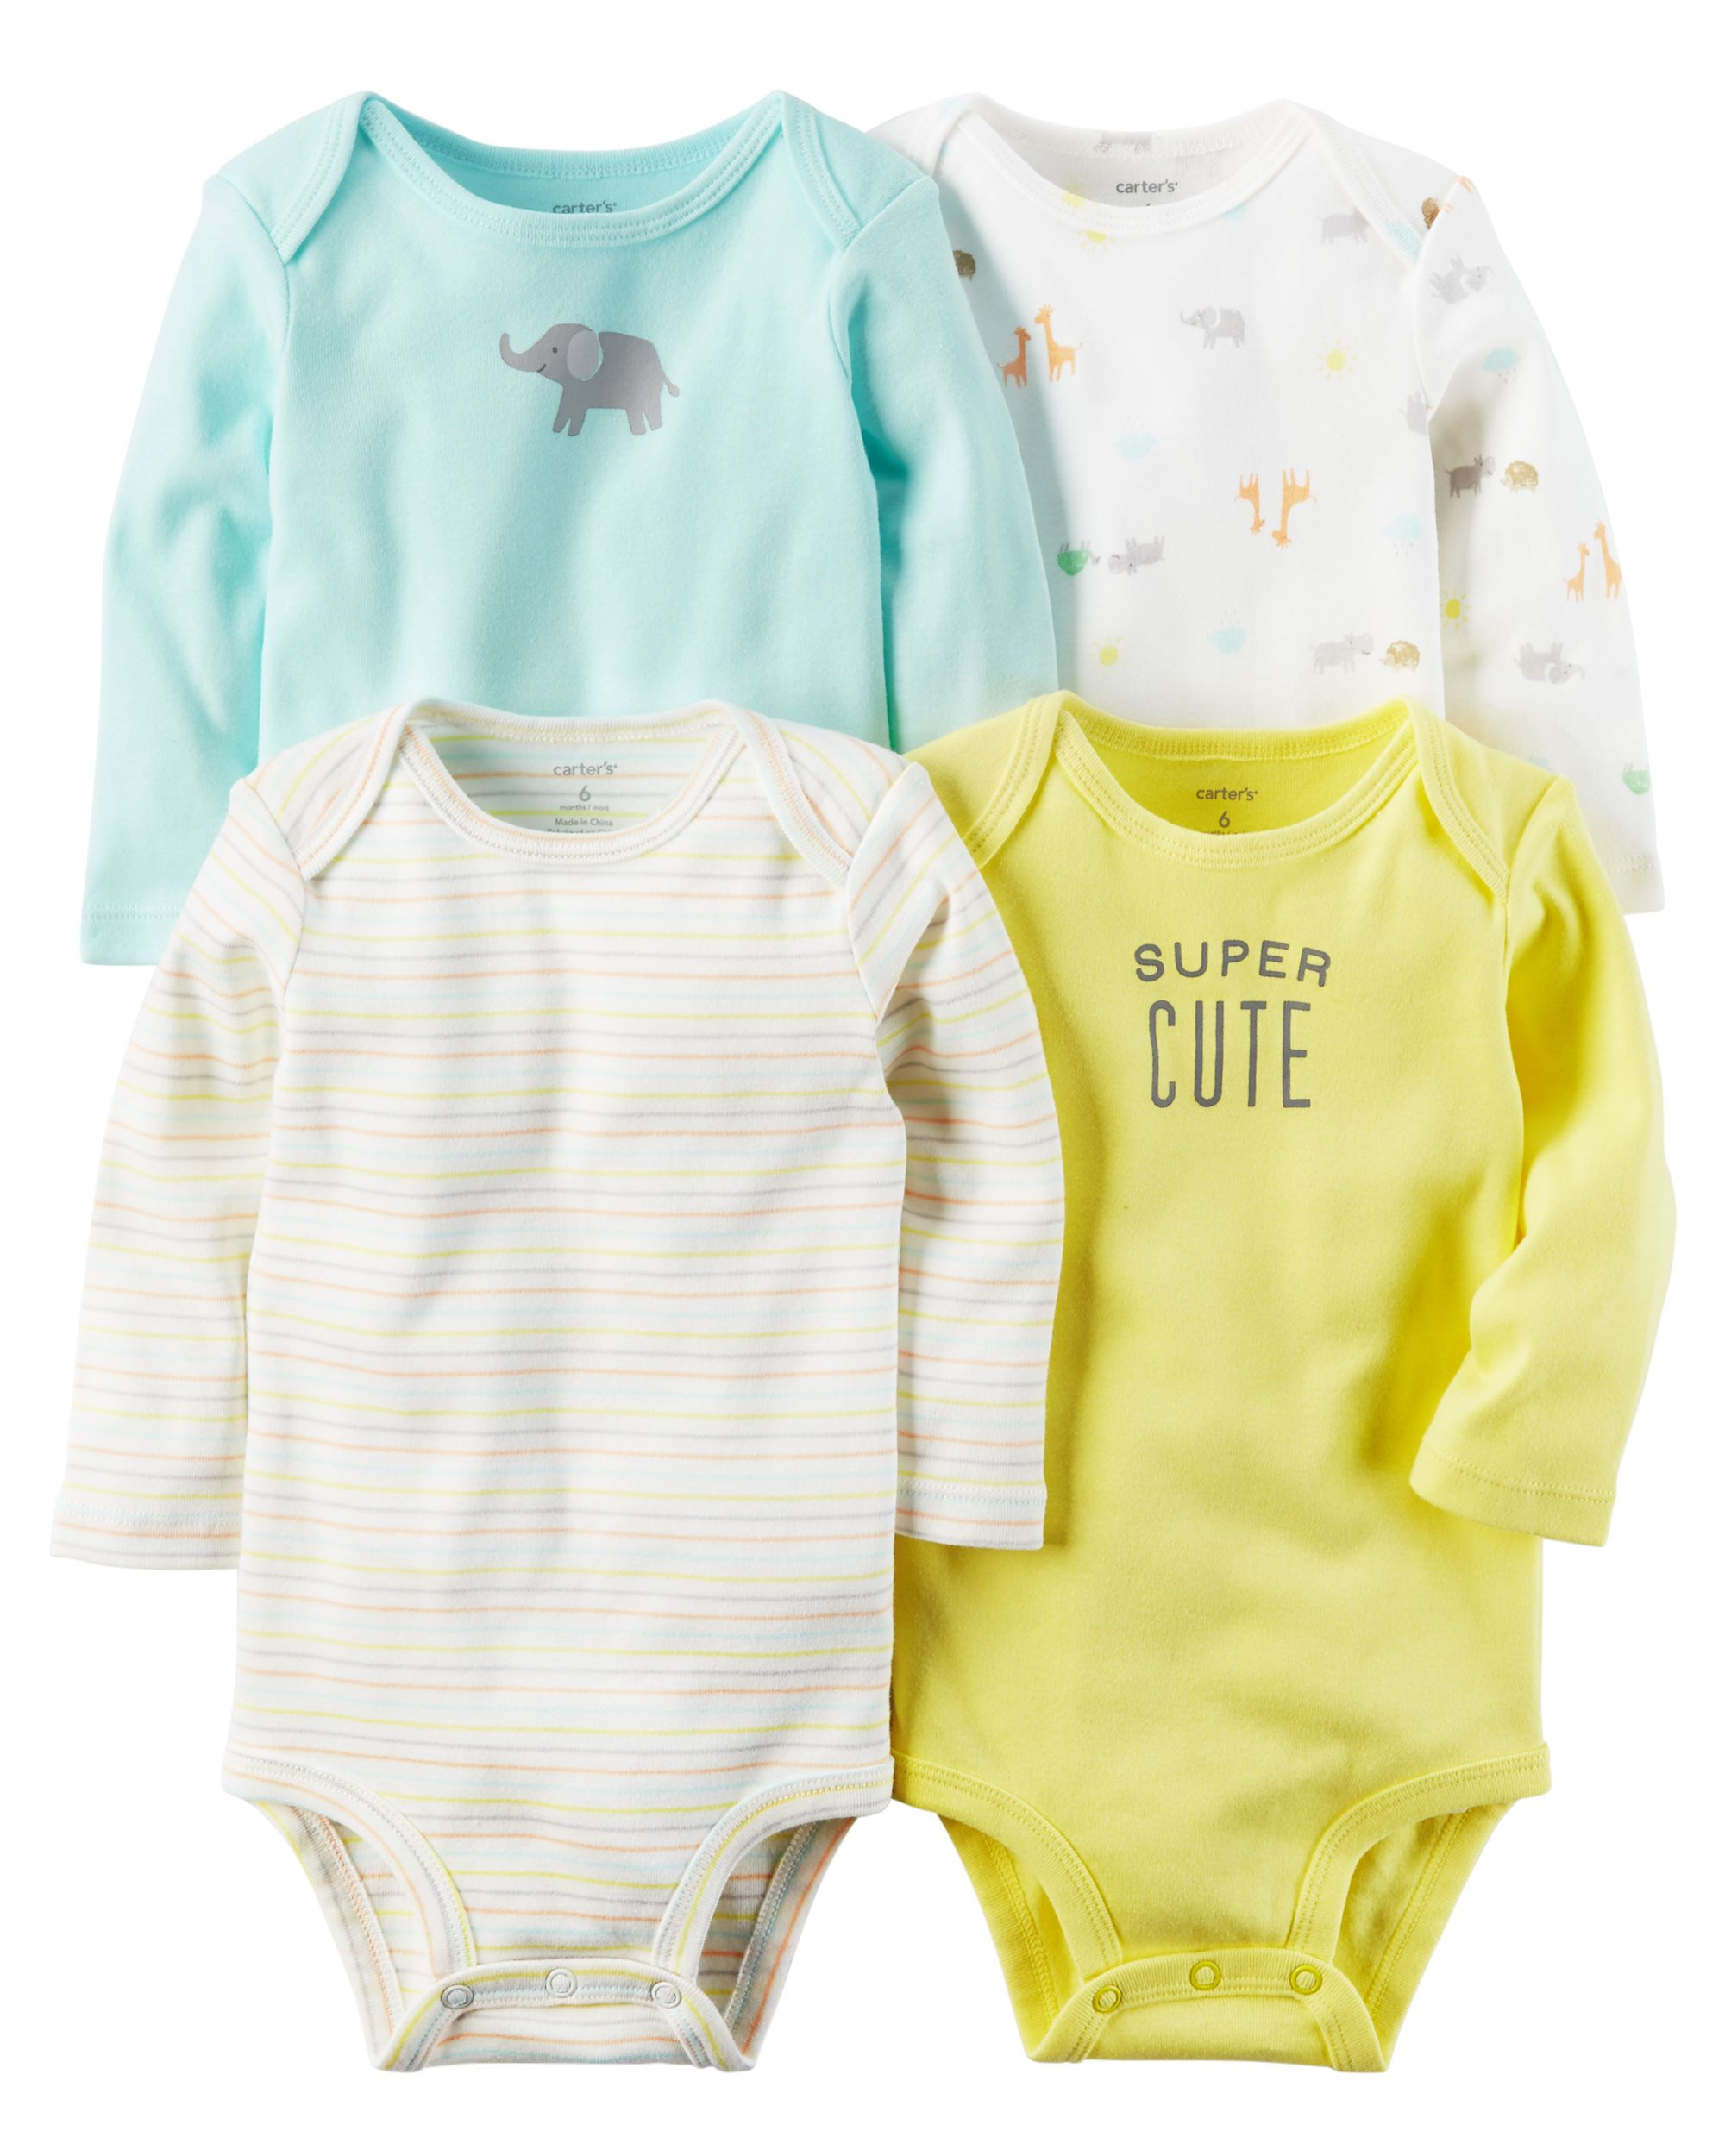 b92170fc8 4-Pack Long-Sleeve Original Bodysuits | Baby Goals & Clothes | Cute ...